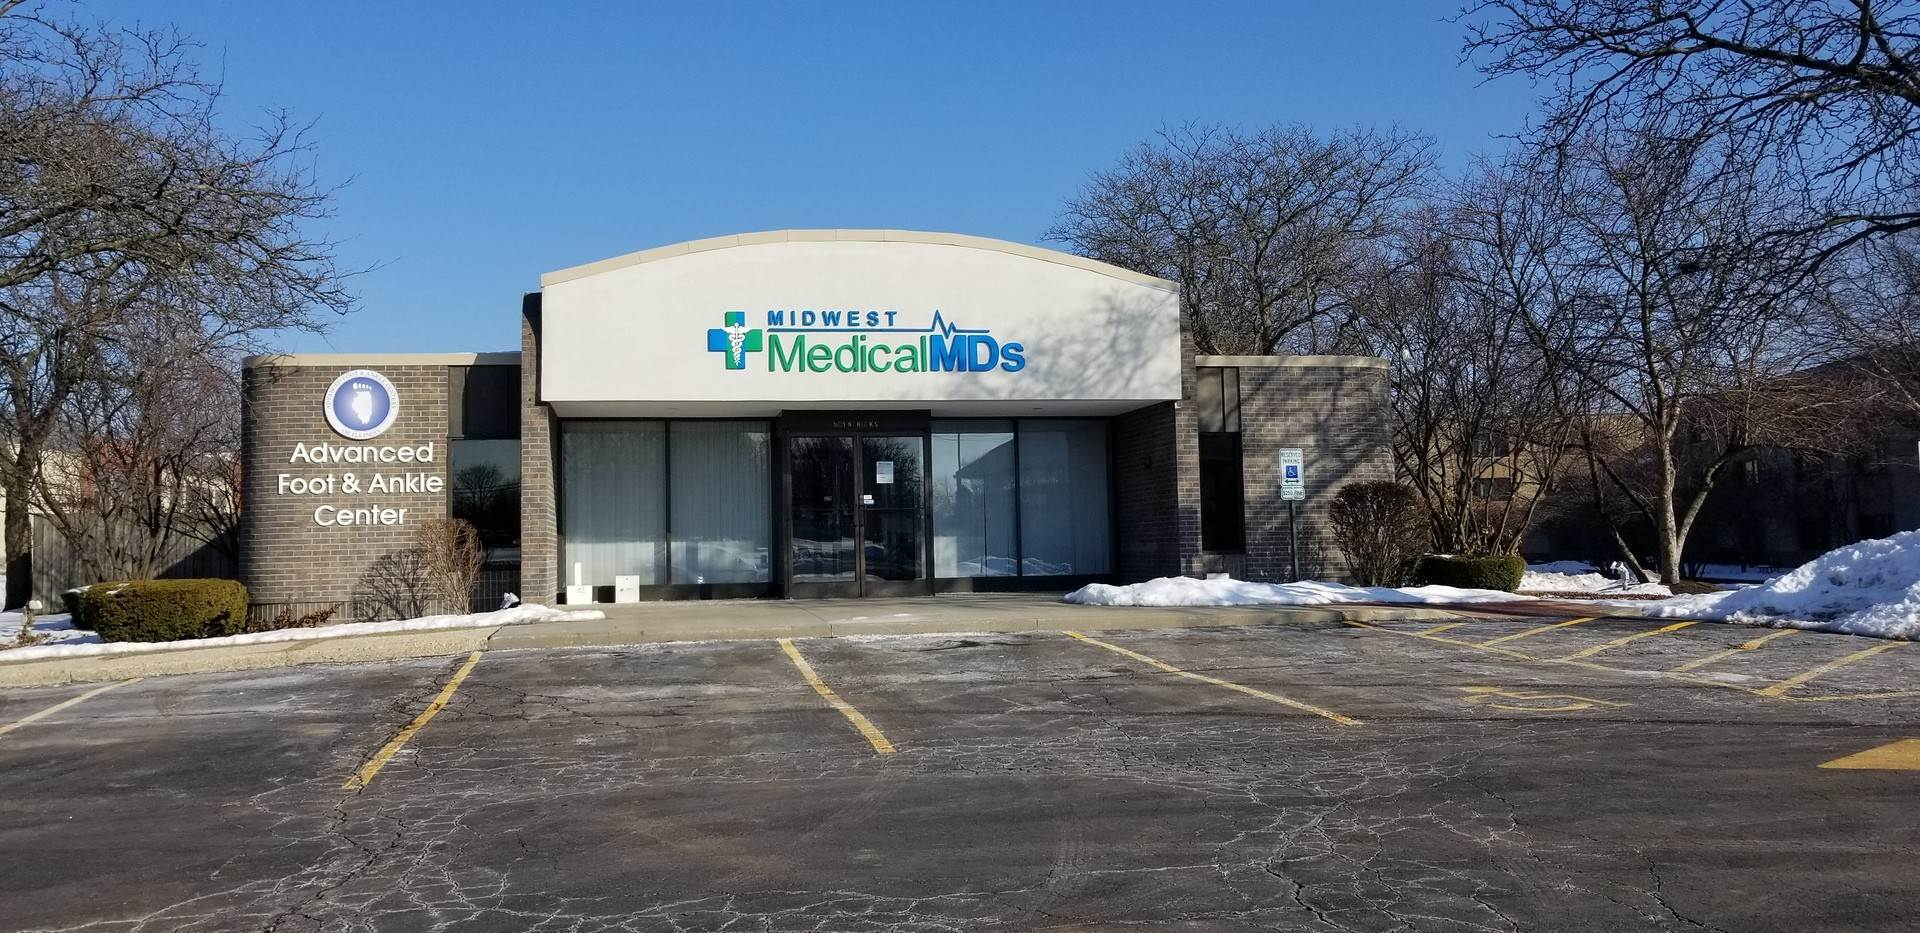 Commercial for Sale at 501 N Hicks Road Palatine, Illinois 60067 United States